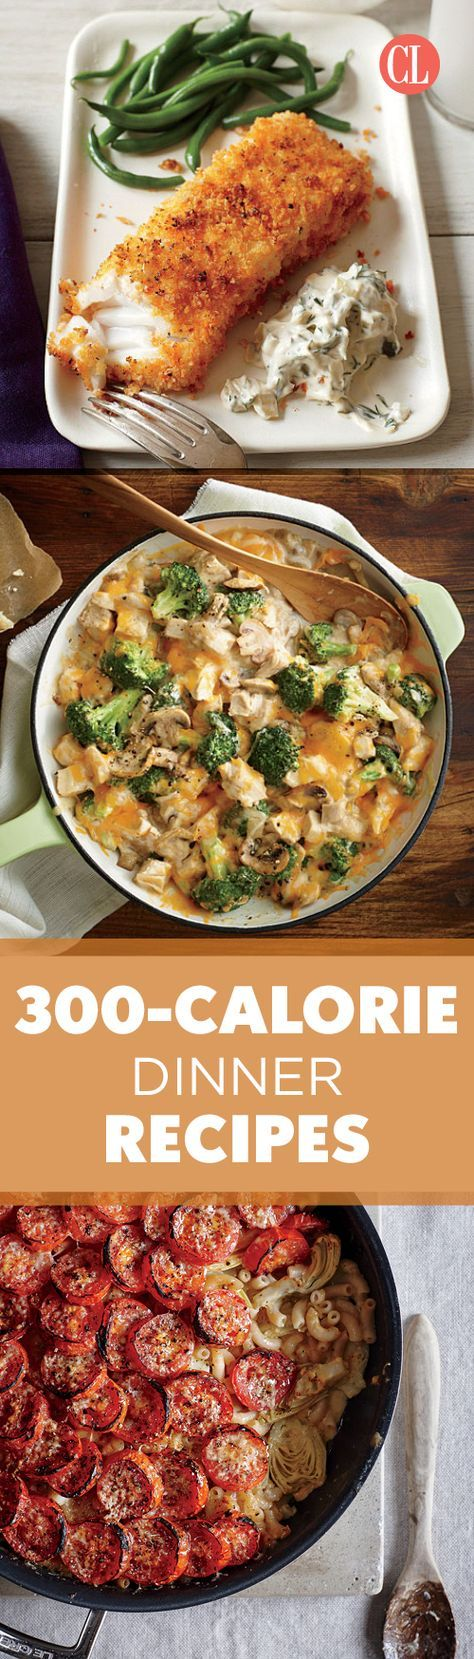 how to get 3000 calories a day